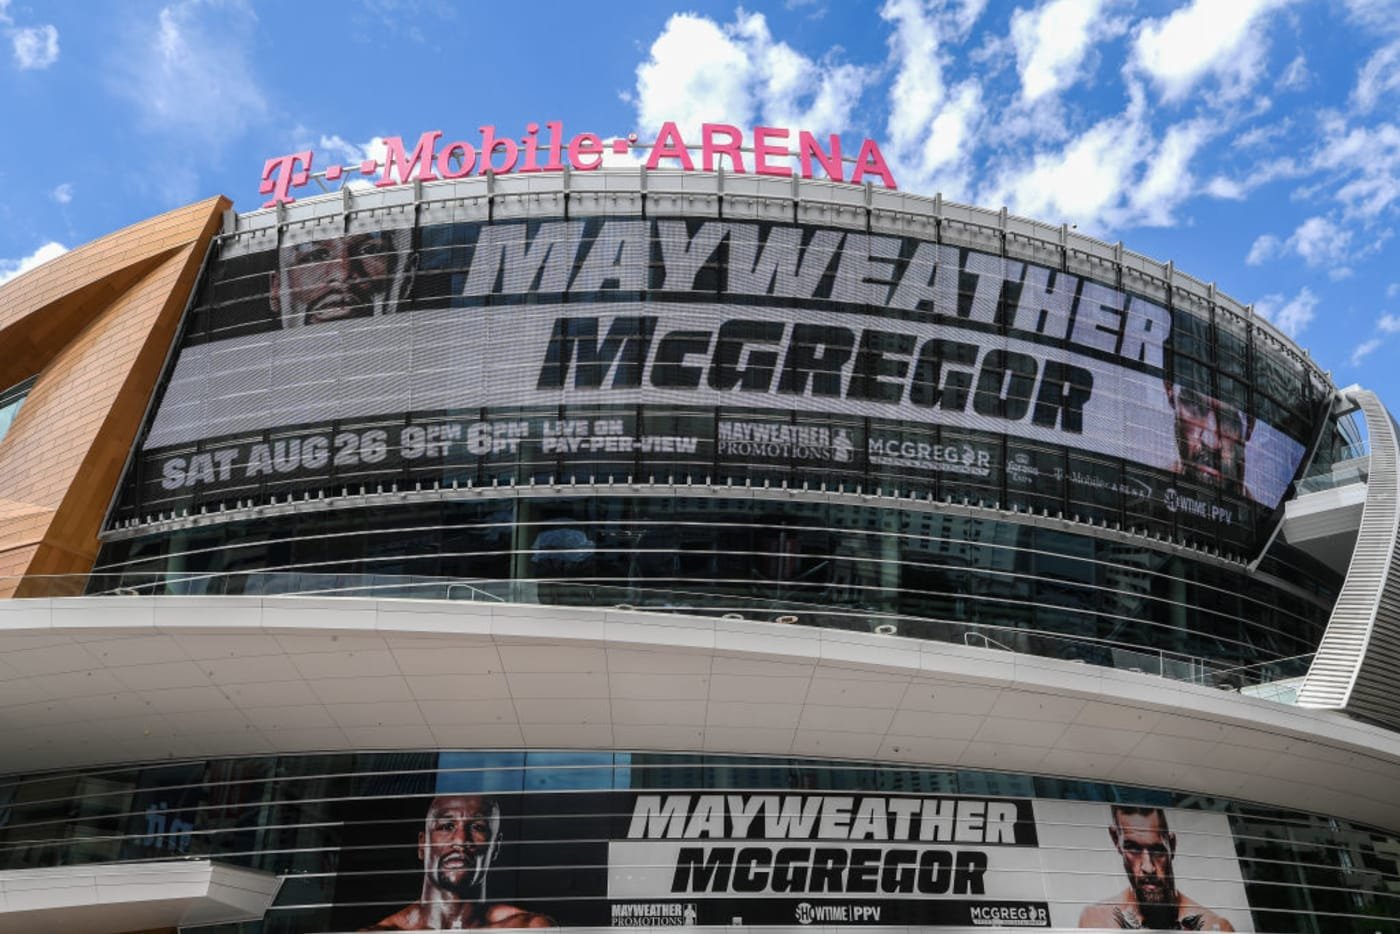 T Mobile Arena Sat Aug., 26 2017Getty